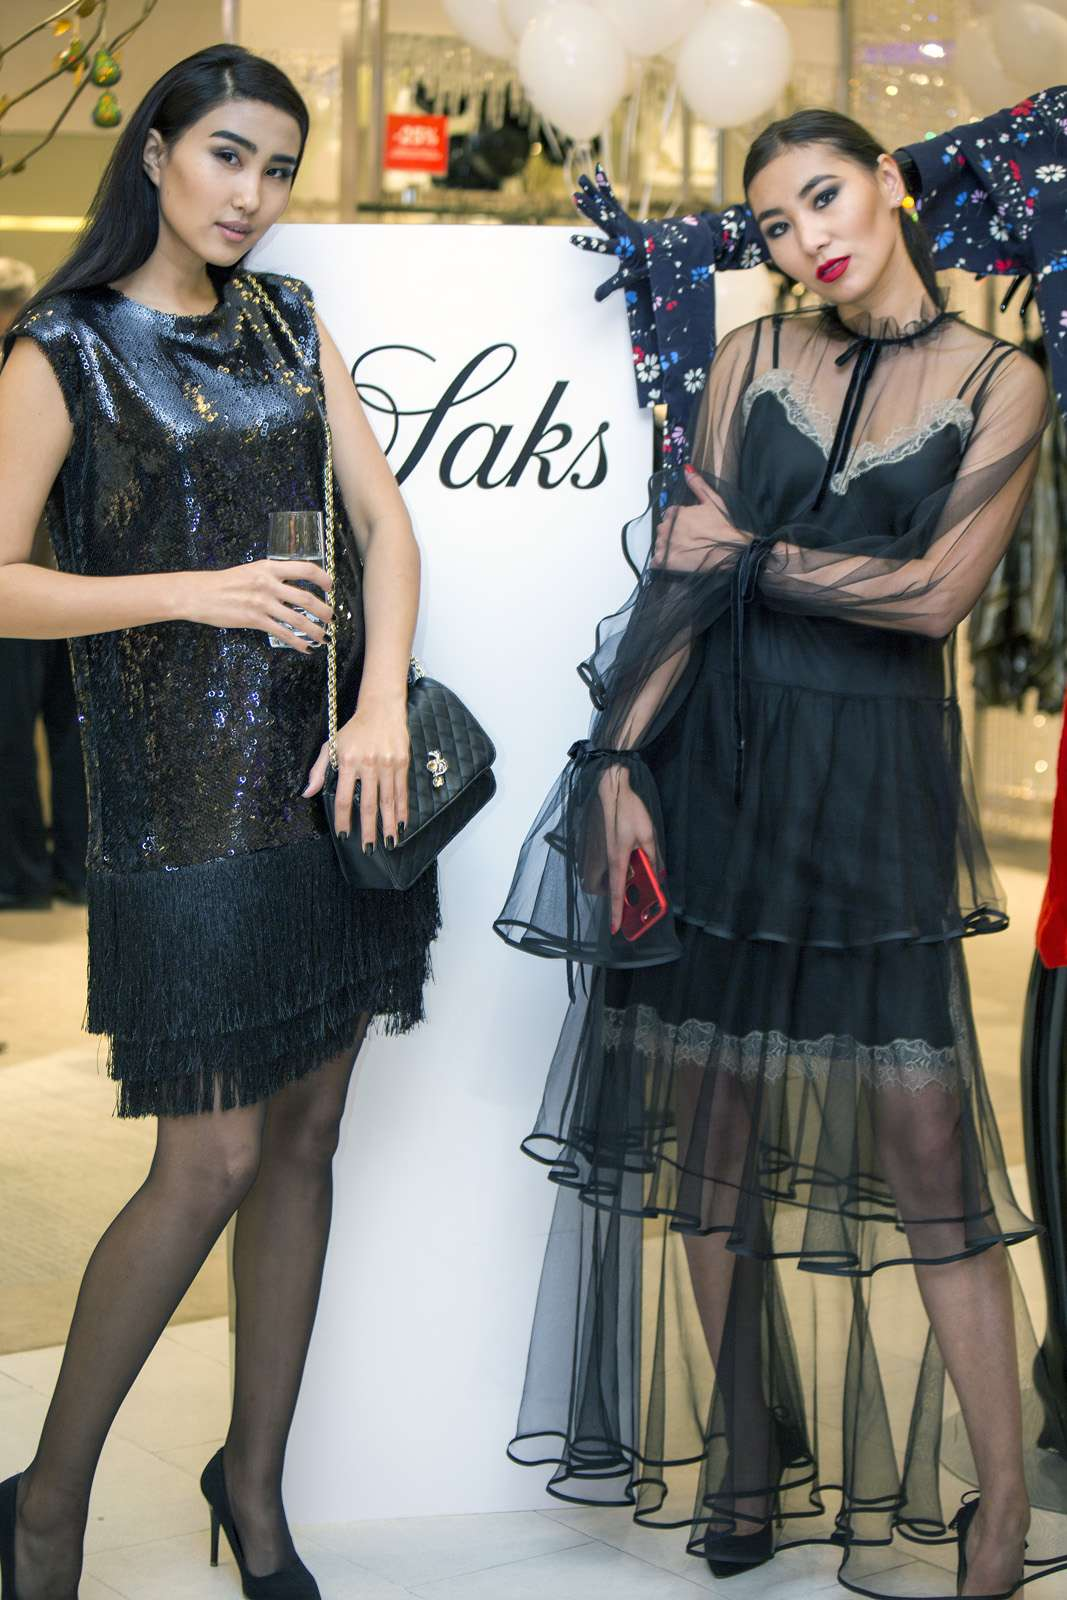 Saks Fifth Avenue Almaty